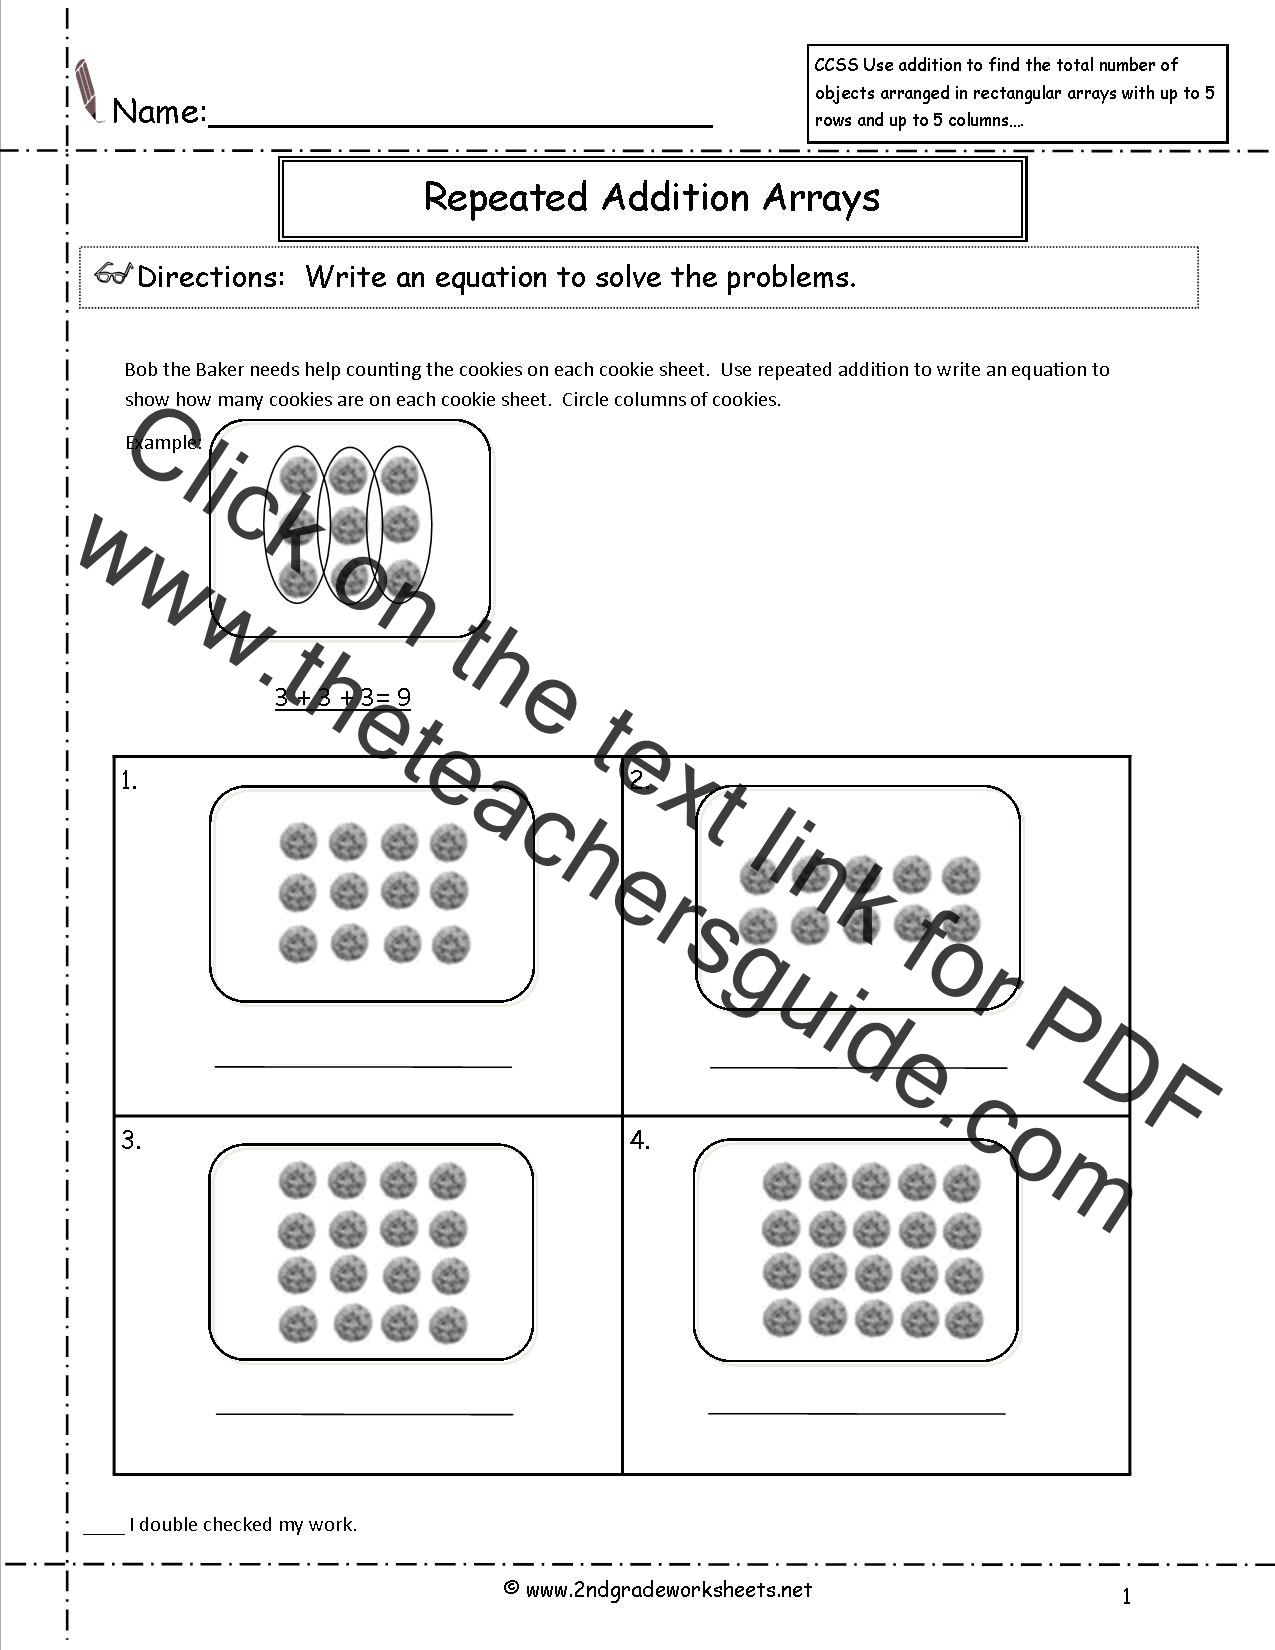 Free Worksheet Ccss Math Worksheets 2nd grade math common core state standards worksheets ccss 2 oa 4 worksheets